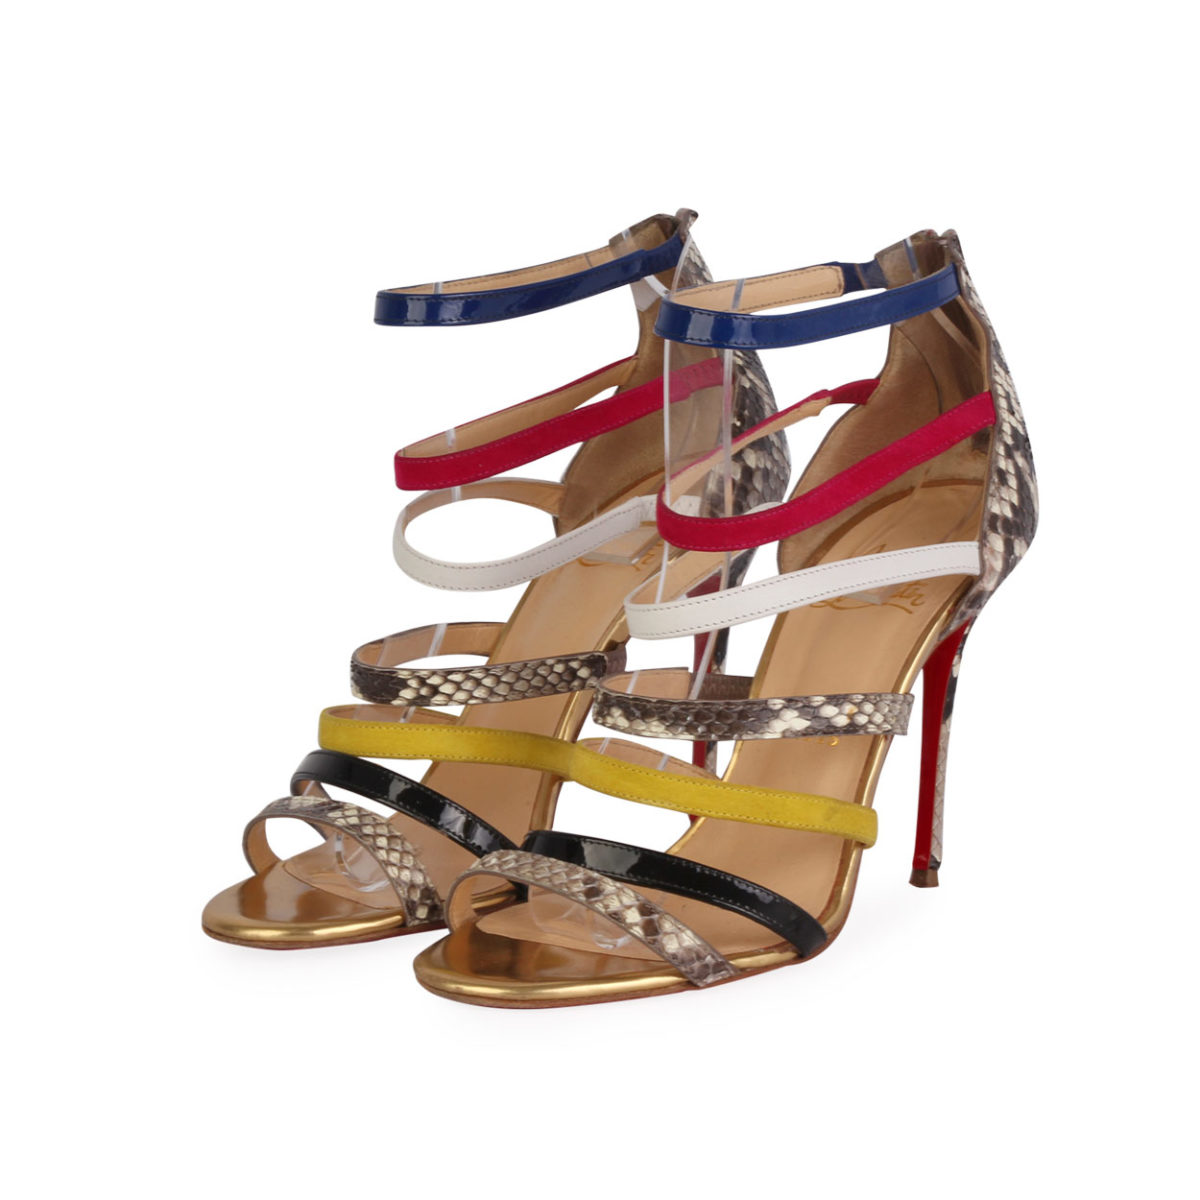 sports shoes 8b435 2c72a CHRISTIAN LOUBOUTIN Leather Mariniere Cage Pumps Multicolor - S: 37.5 (4.5)